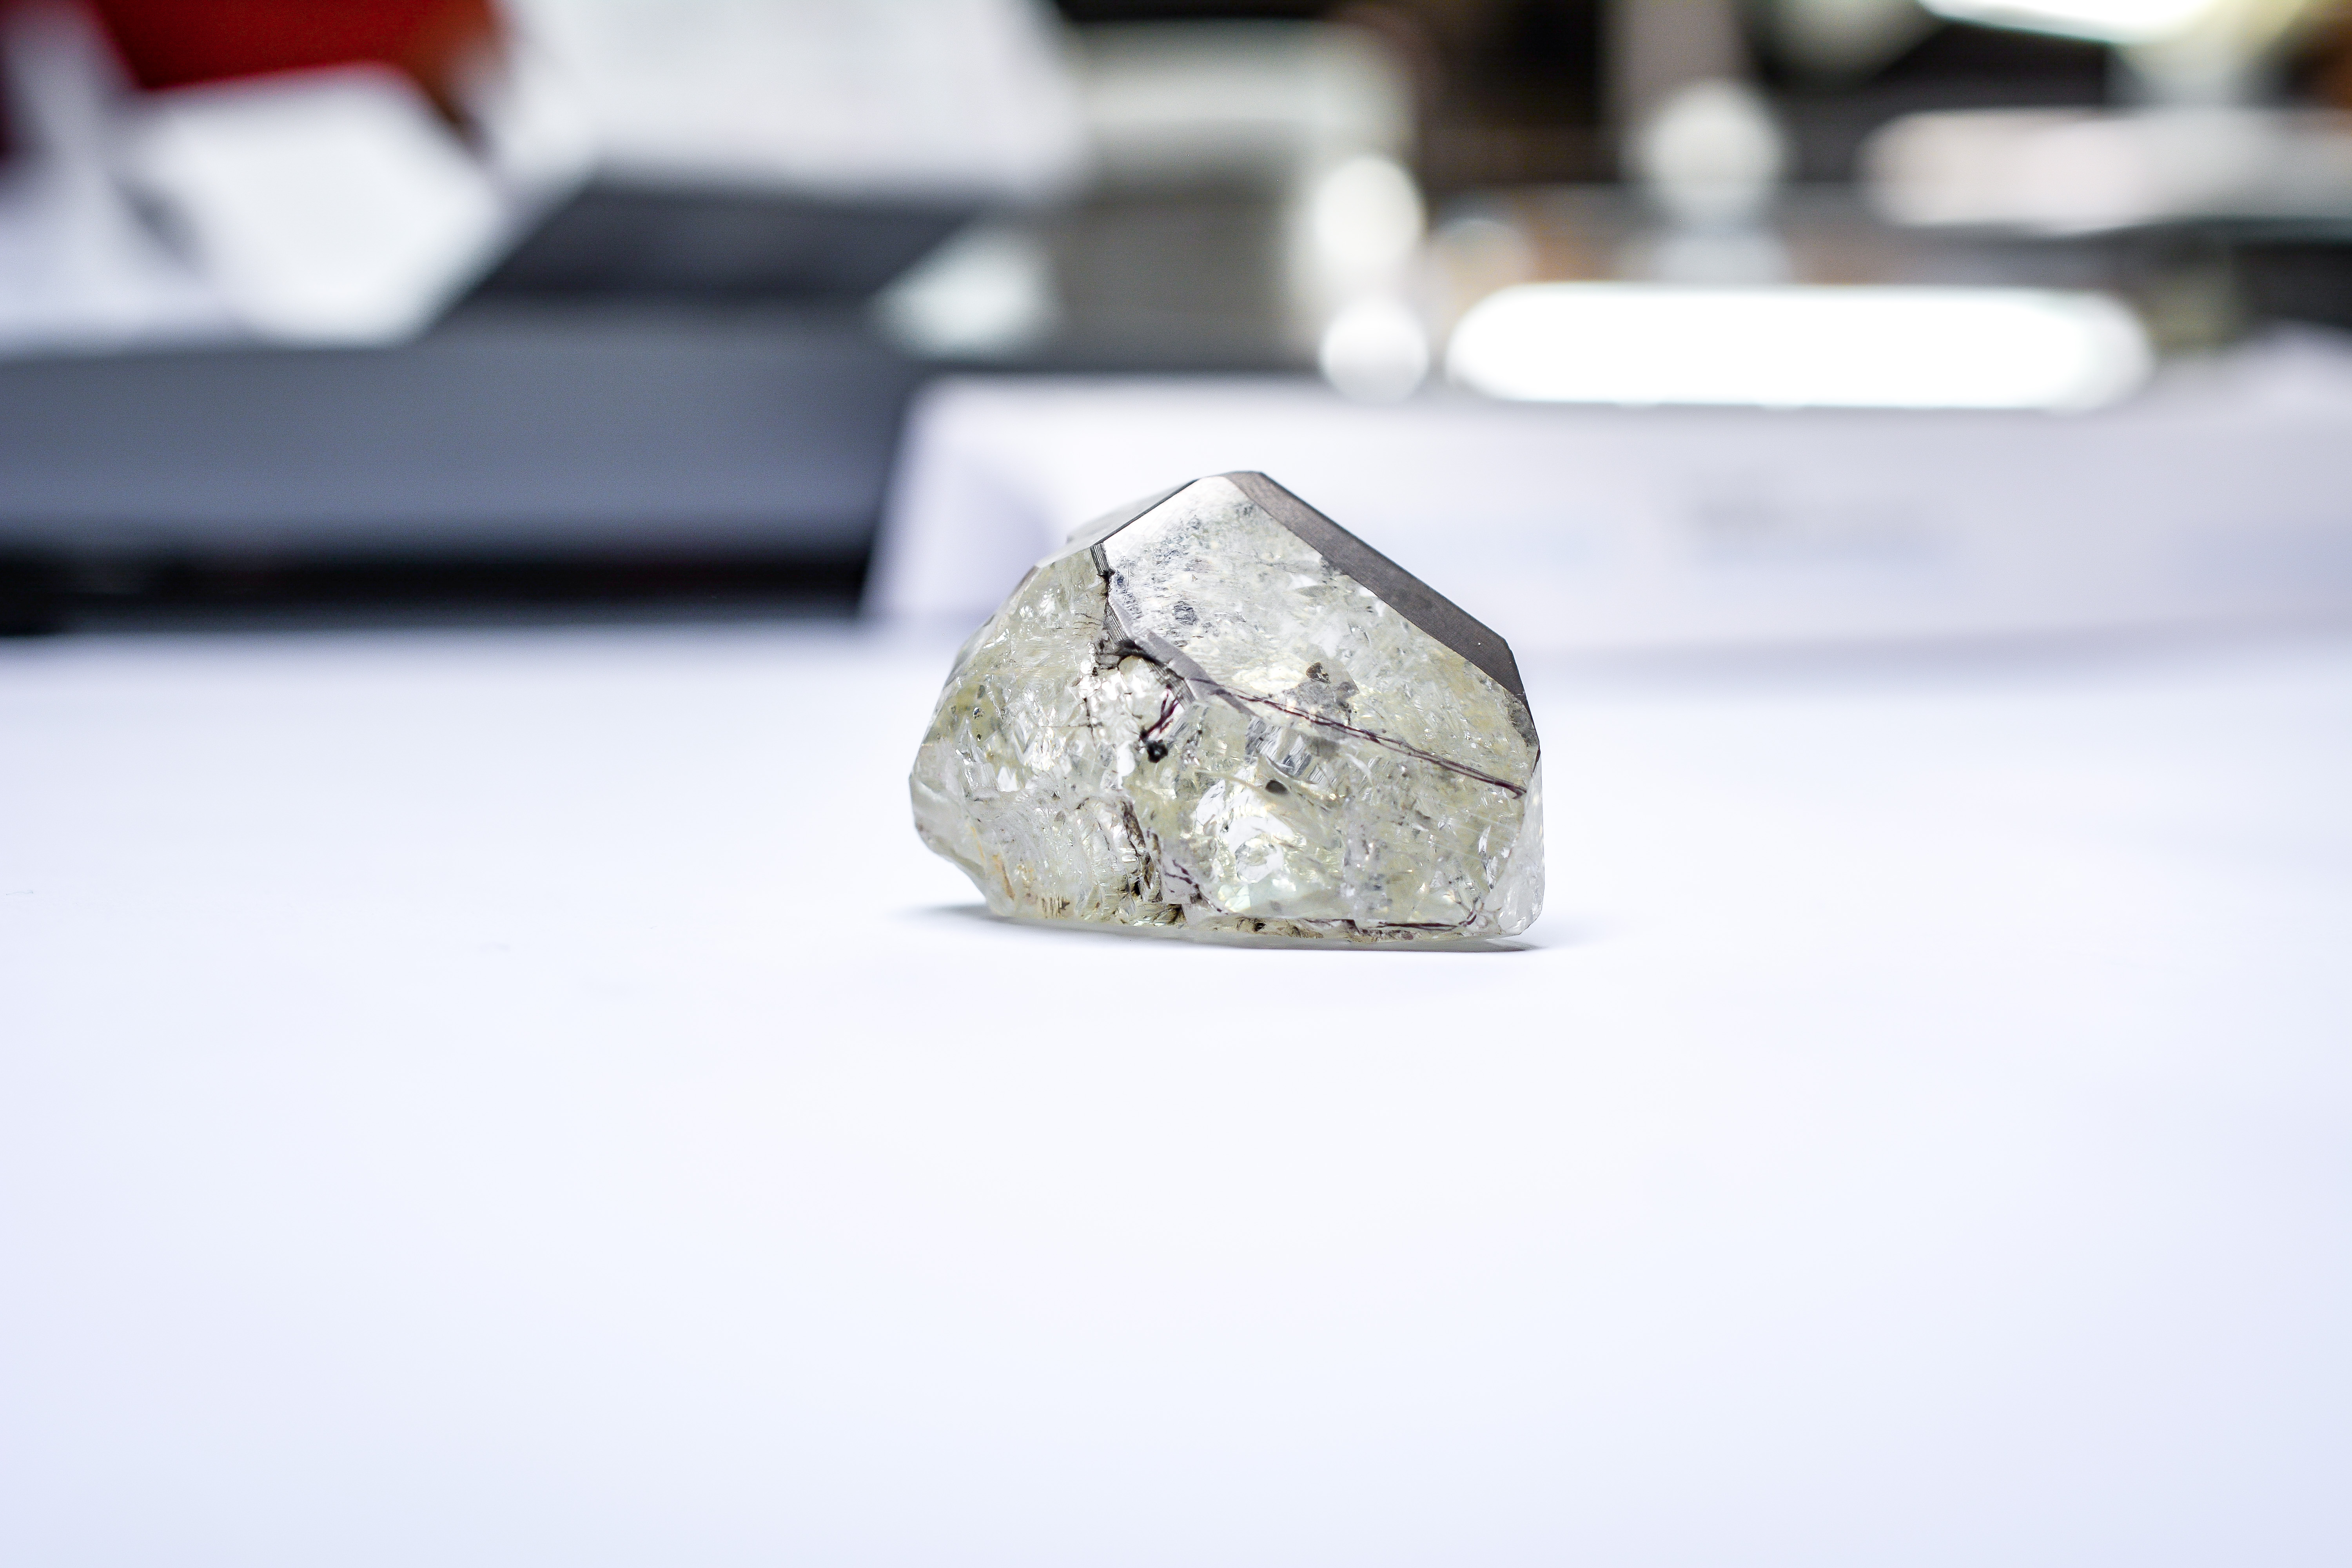 Global Diamond Production Falls 2% to 148 2M Carats in 2018